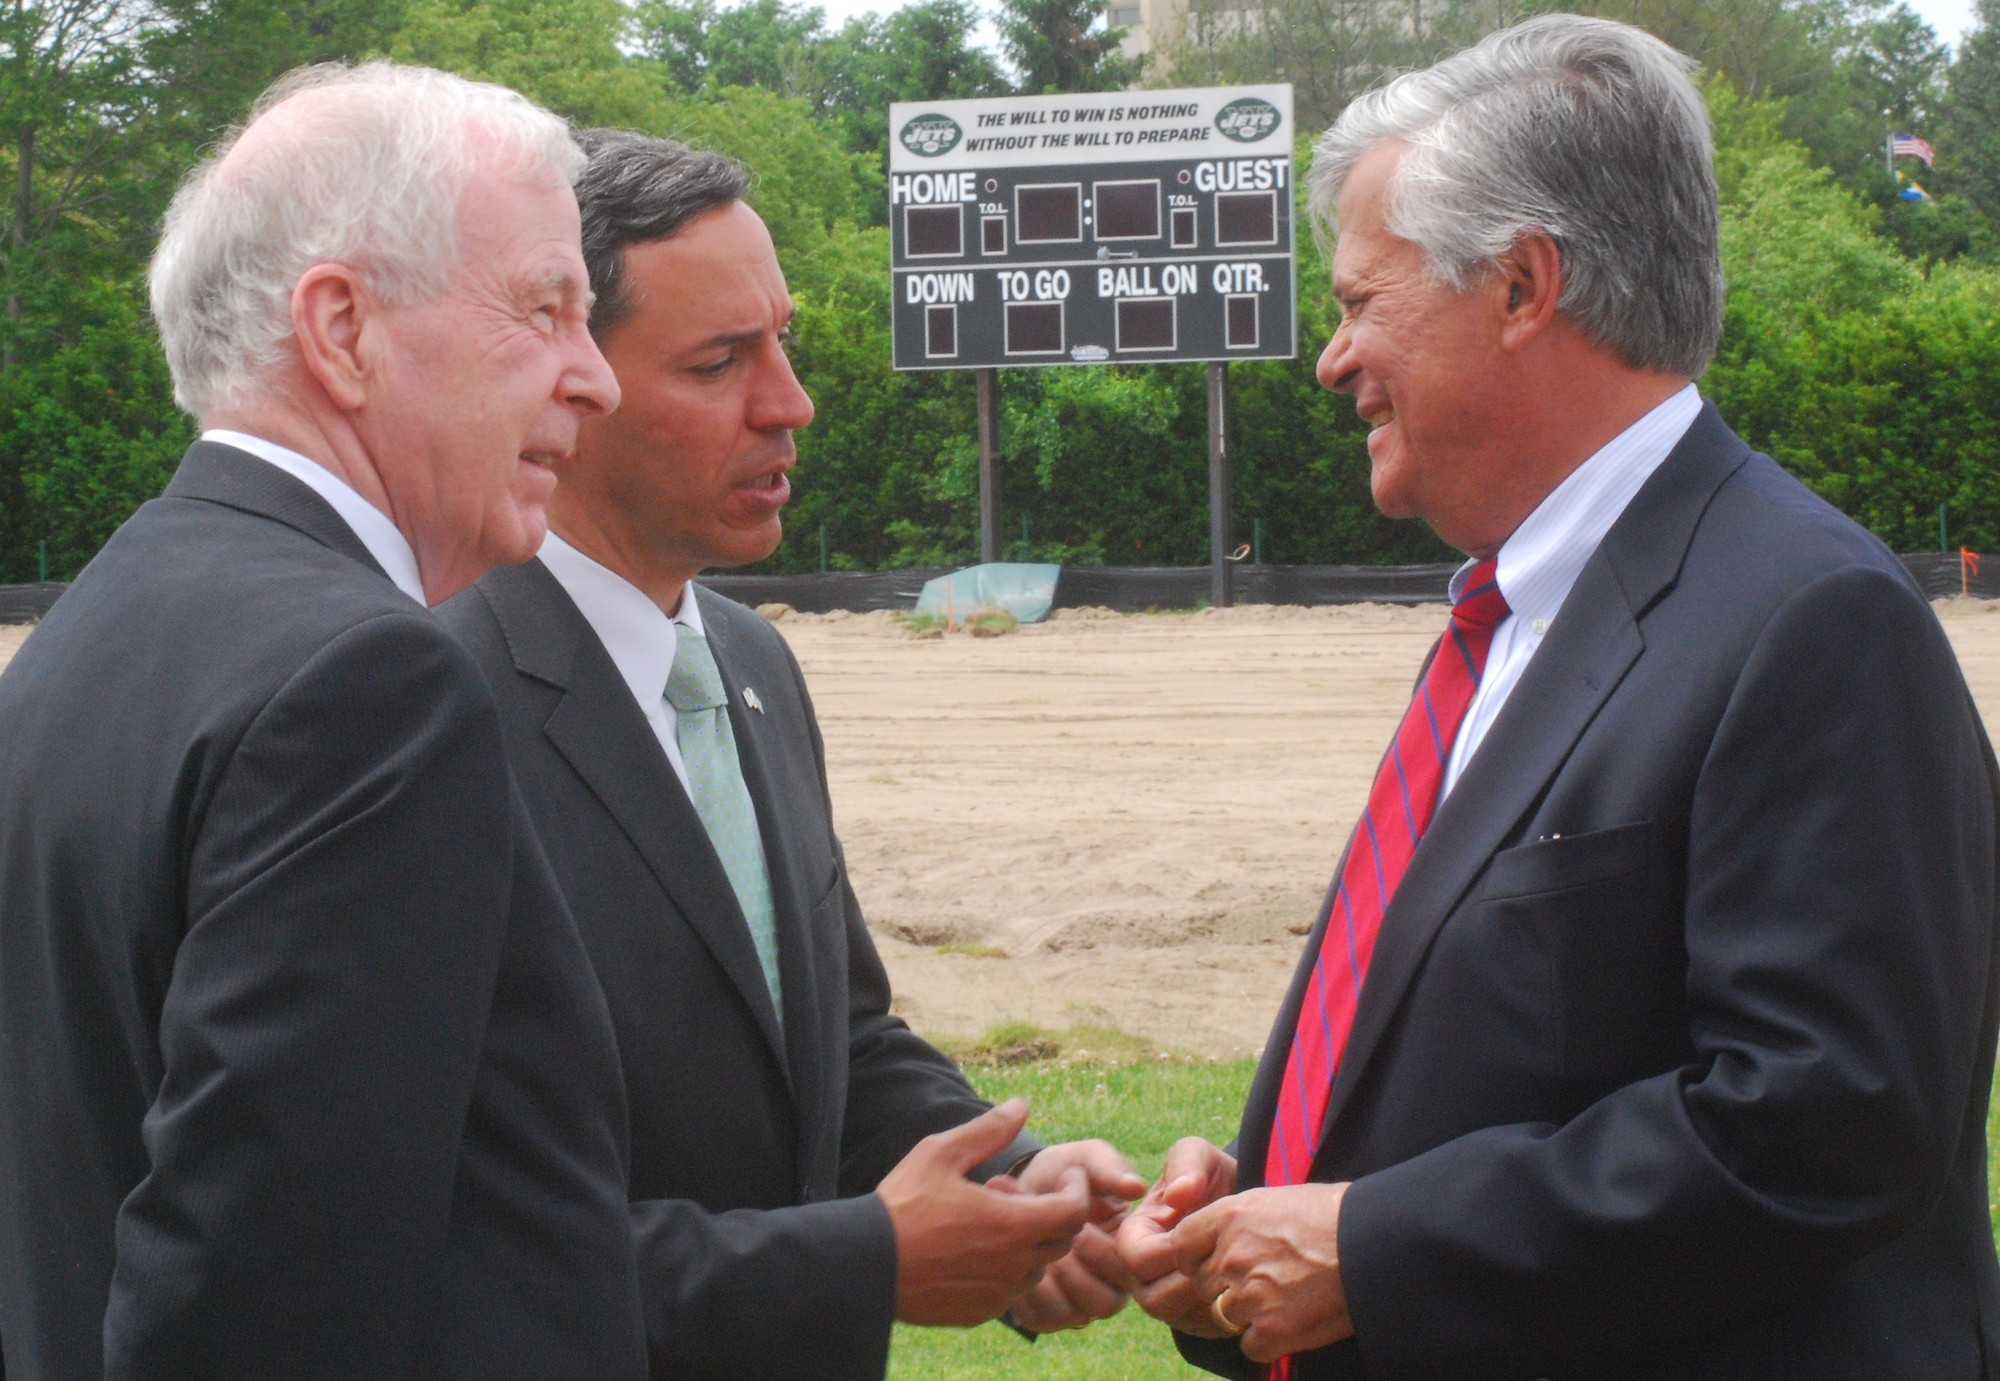 The addition to the medical school will be built at the Jets' former training camp on Hofstra's north campus. The Jets' scoreboard is still up, but will soon be taken down. Above, state senators, from left, Hannon, Jack Martins and Skelos chatting after the groundbreaking ceremony.